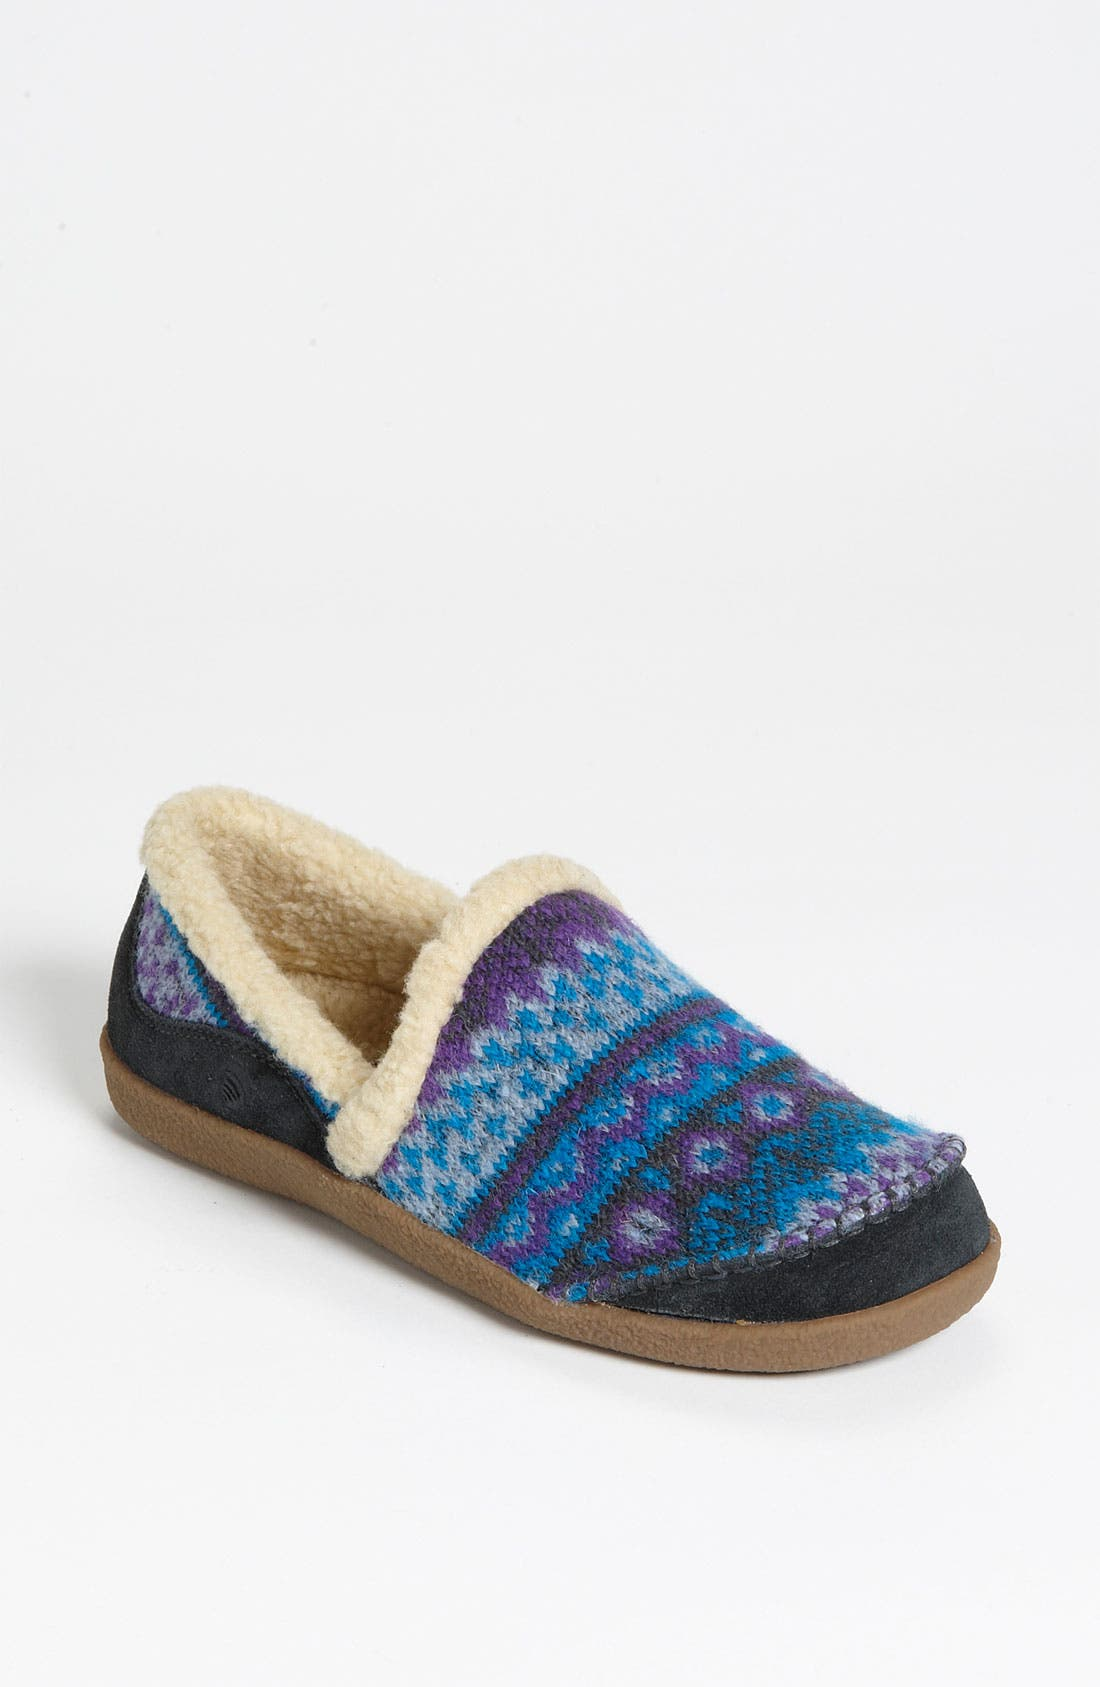 Alternate Image 1 Selected - Acorn 'Crosslander Moc' Slipper